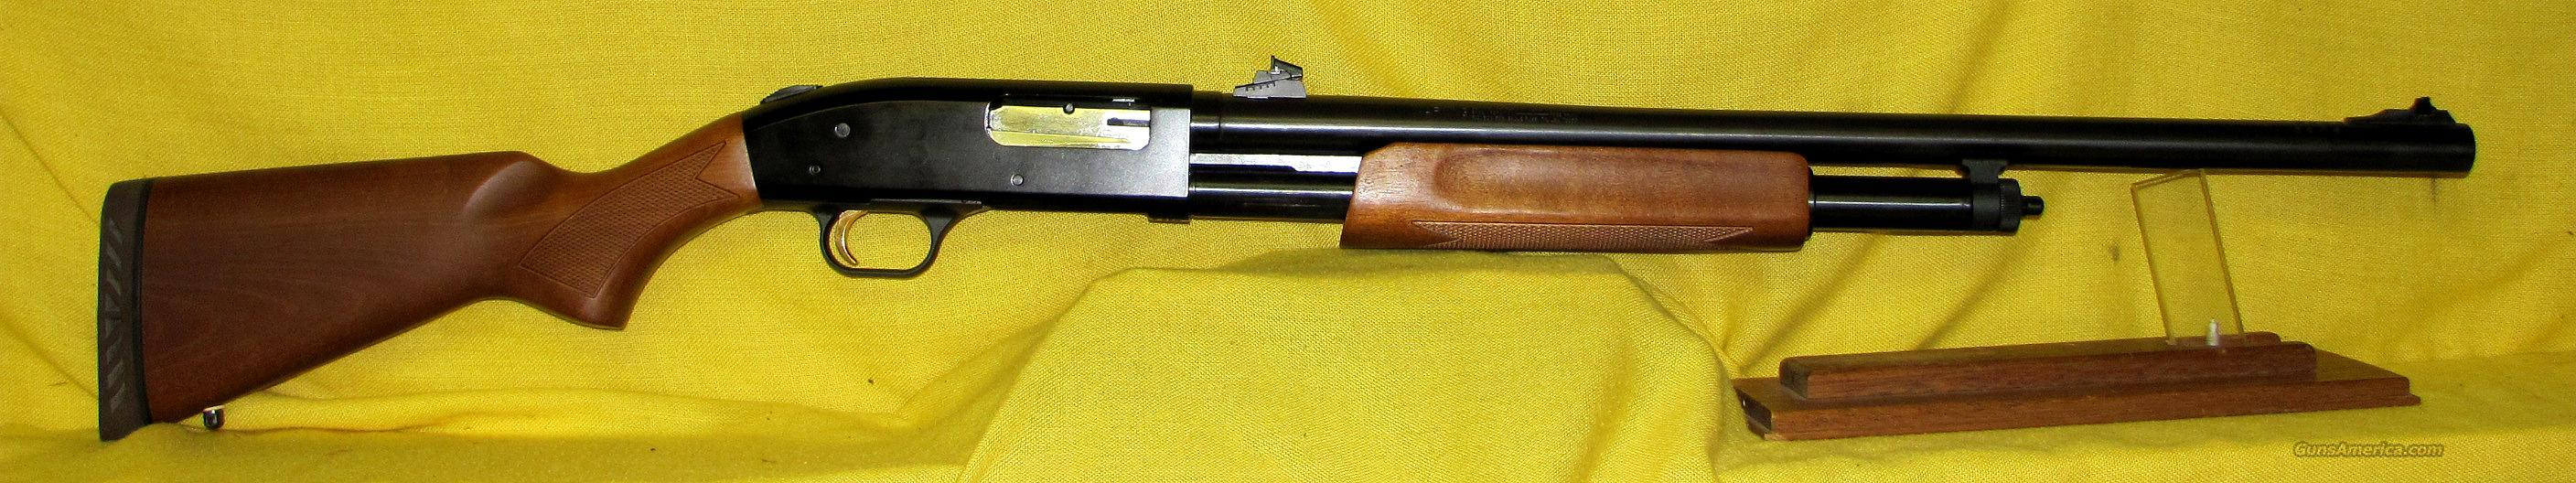 MOSSBERG 500A (PORTED)  Guns > Shotguns > Mossberg Shotguns > Pump > Sporting